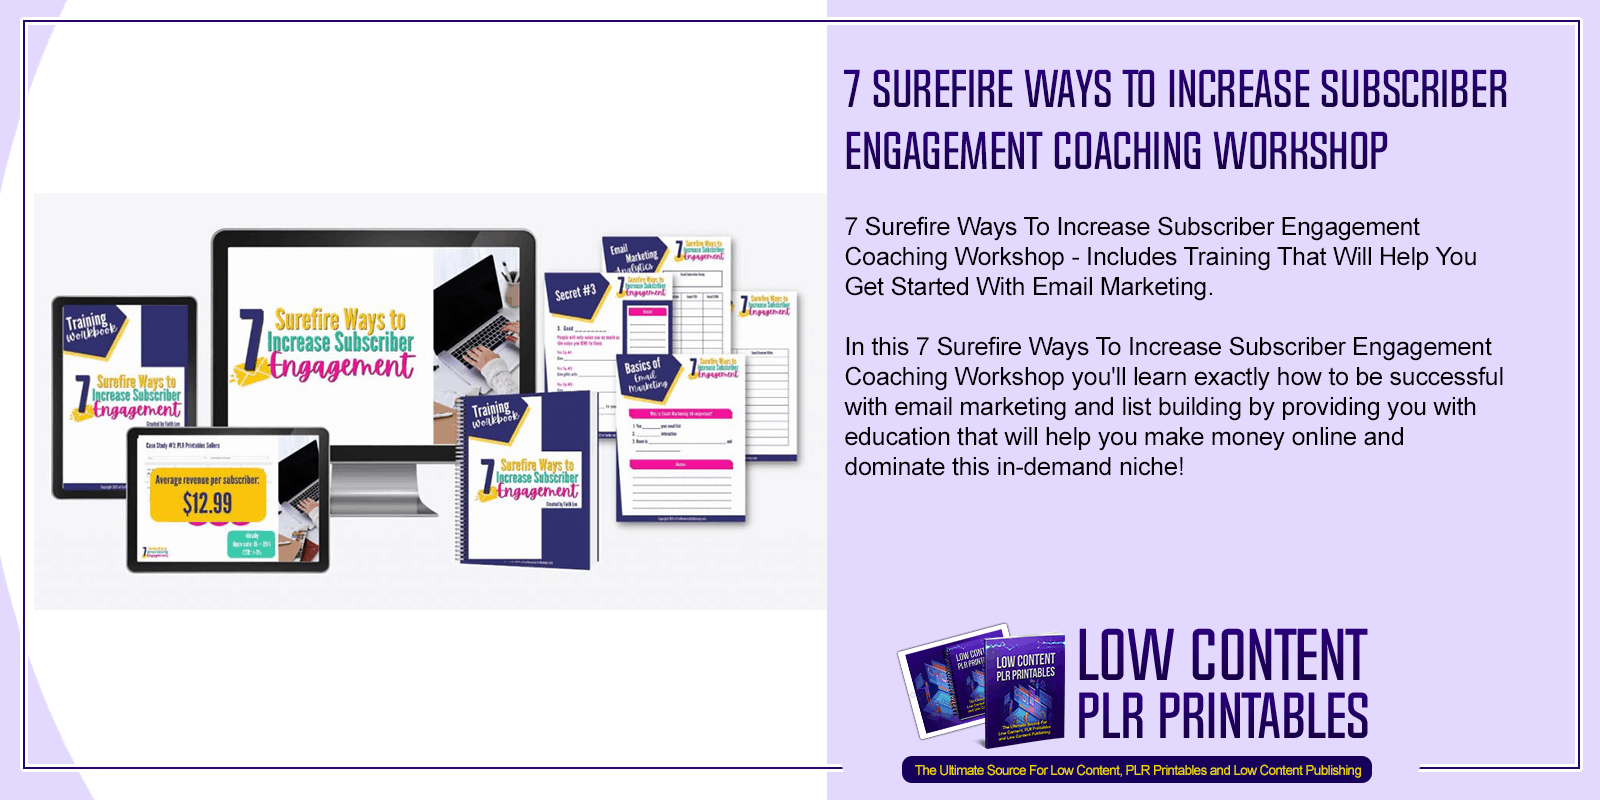 7 Surefire Ways To Increase Subscriber Engagement Coaching Workshop